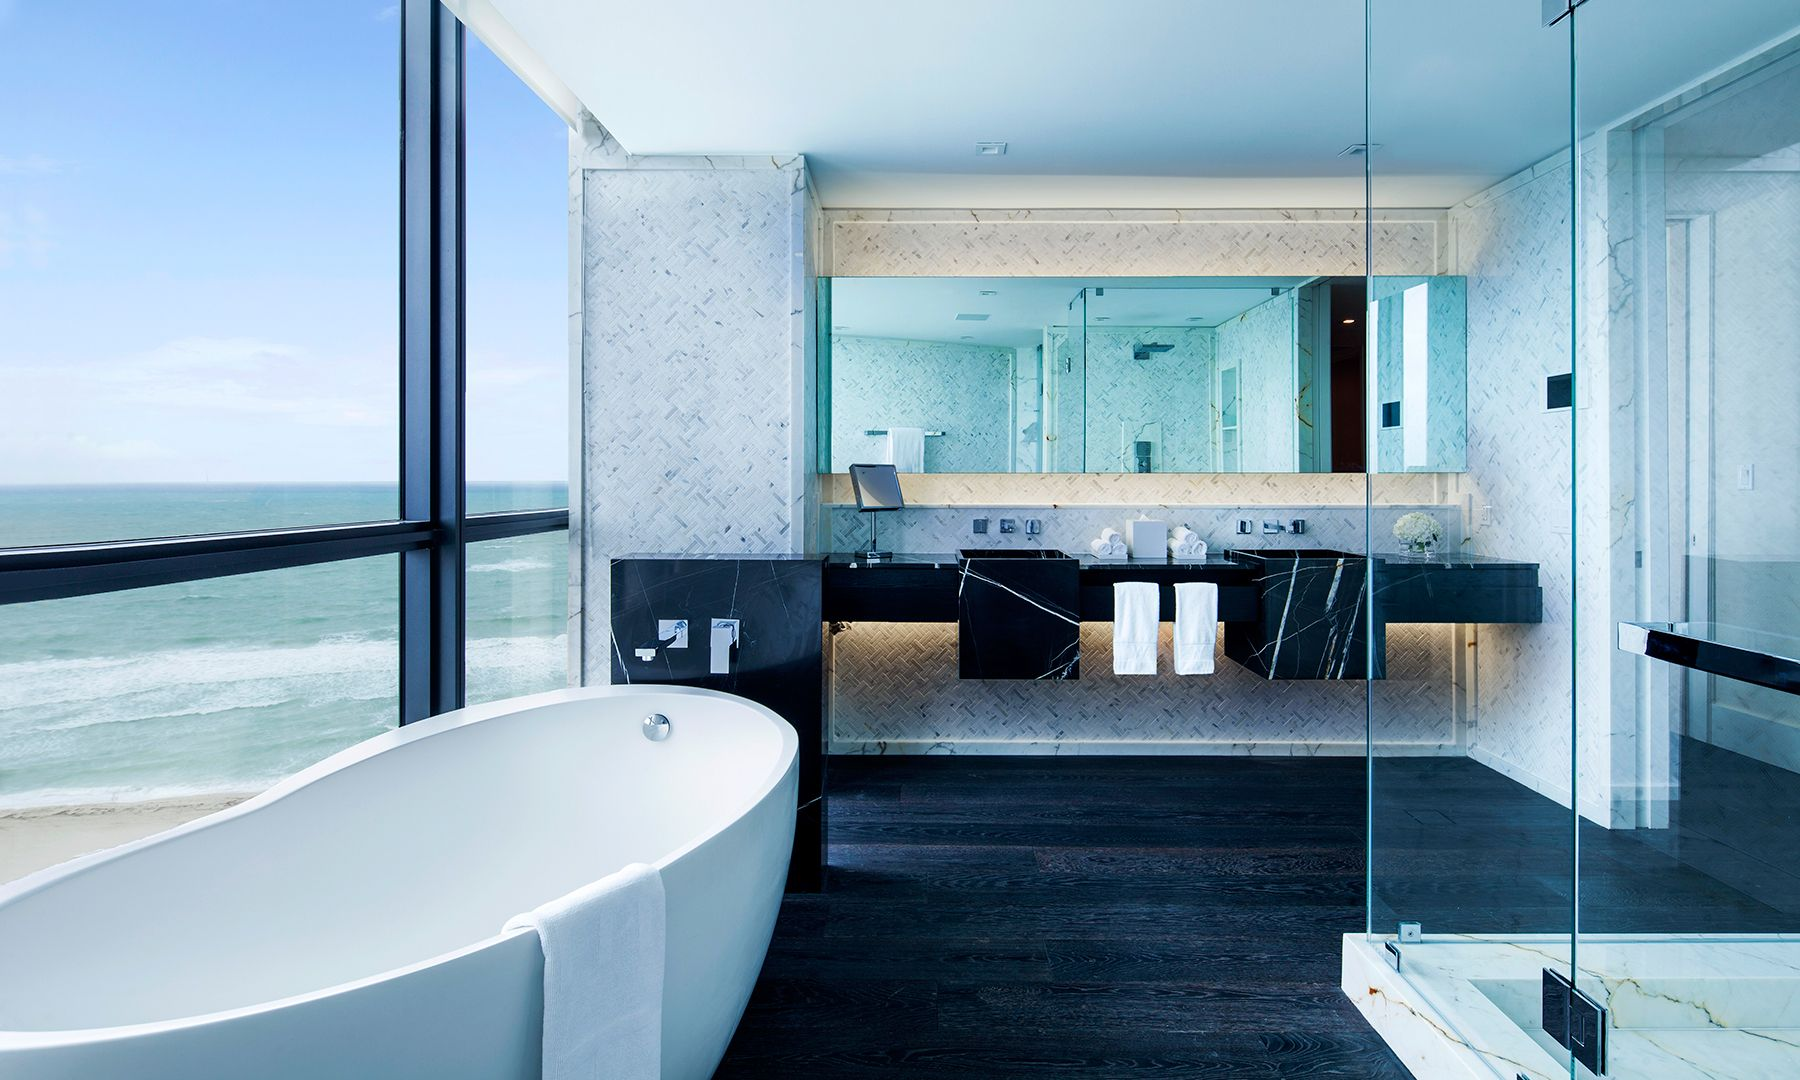 12 Lavish Hotel Bathrooms | Hotel bathroom design, Small ...